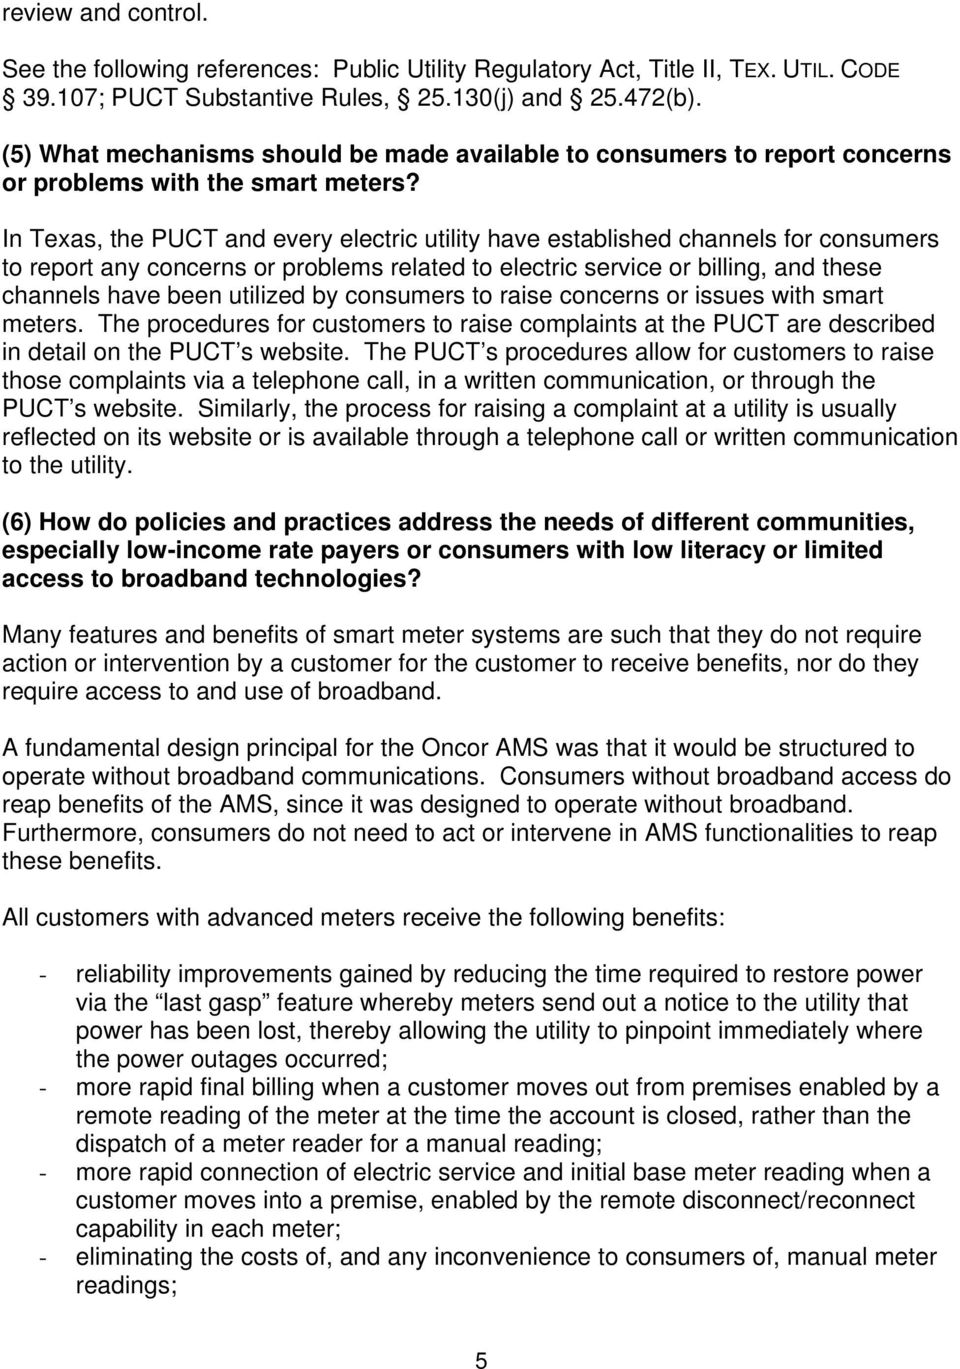 In Texas, the PUCT and every electric utility have established channels for consumers to report any concerns or problems related to electric service or billing, and these channels have been utilized